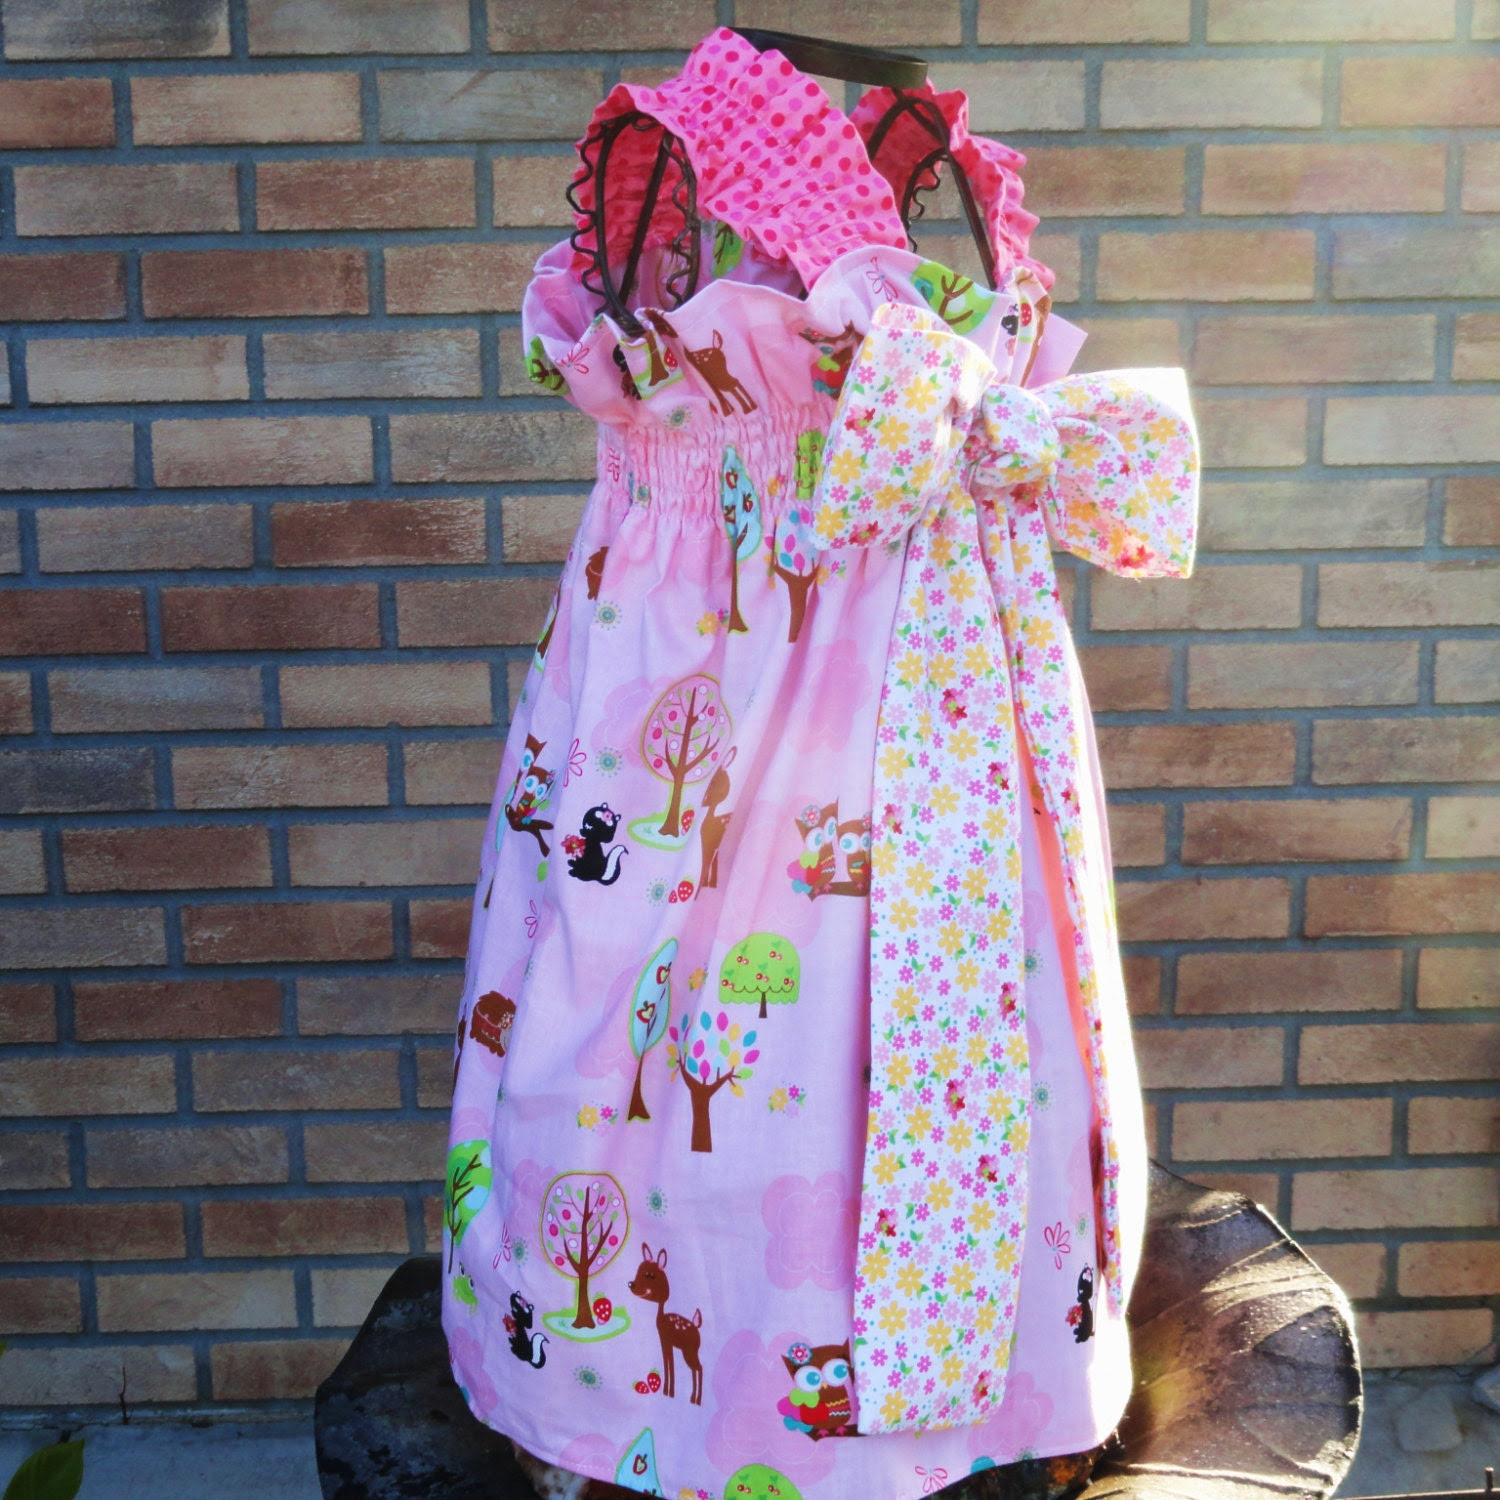 Forest Fun Summer Sundress Gathered Bow Dress for Girls 12m 18m 24m 2T 3T 4T 5 6